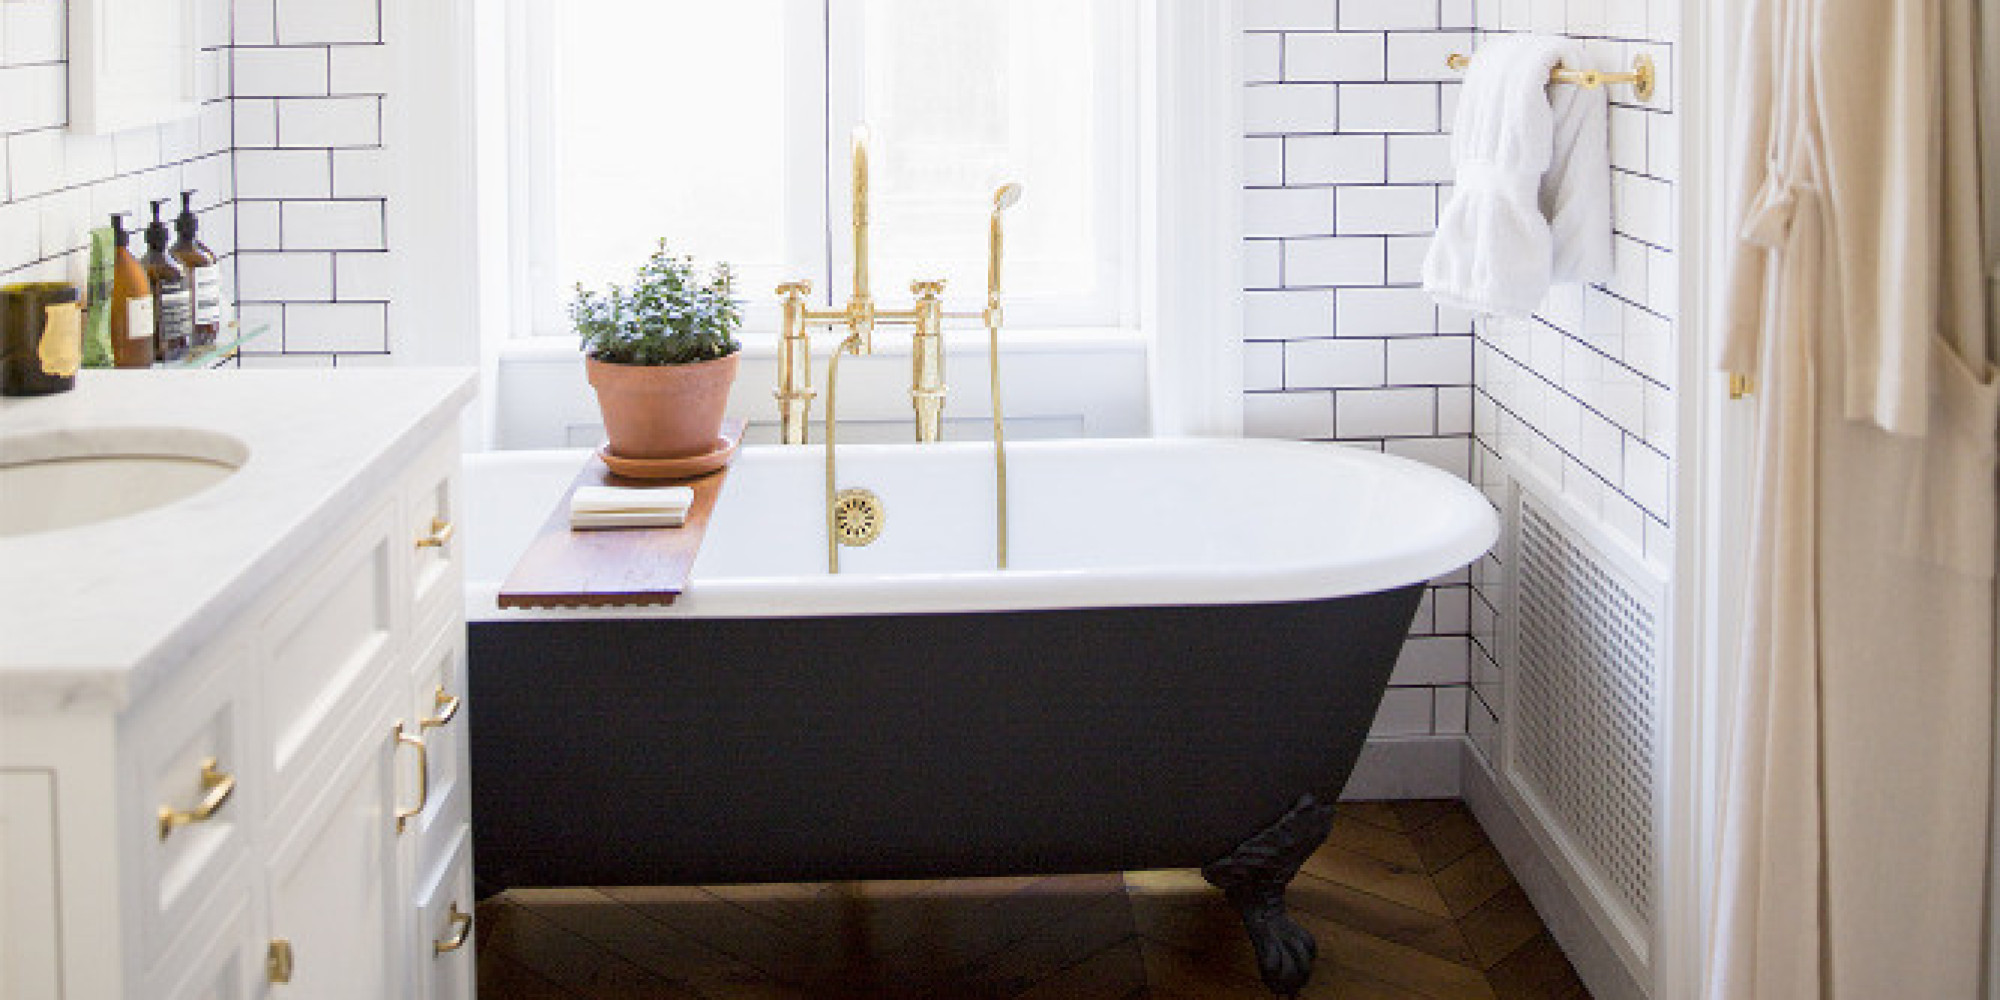 The 6 Biggest Bathroom Trends Of 2015 Are What Weu0027ve Been Waiting For |  HuffPost